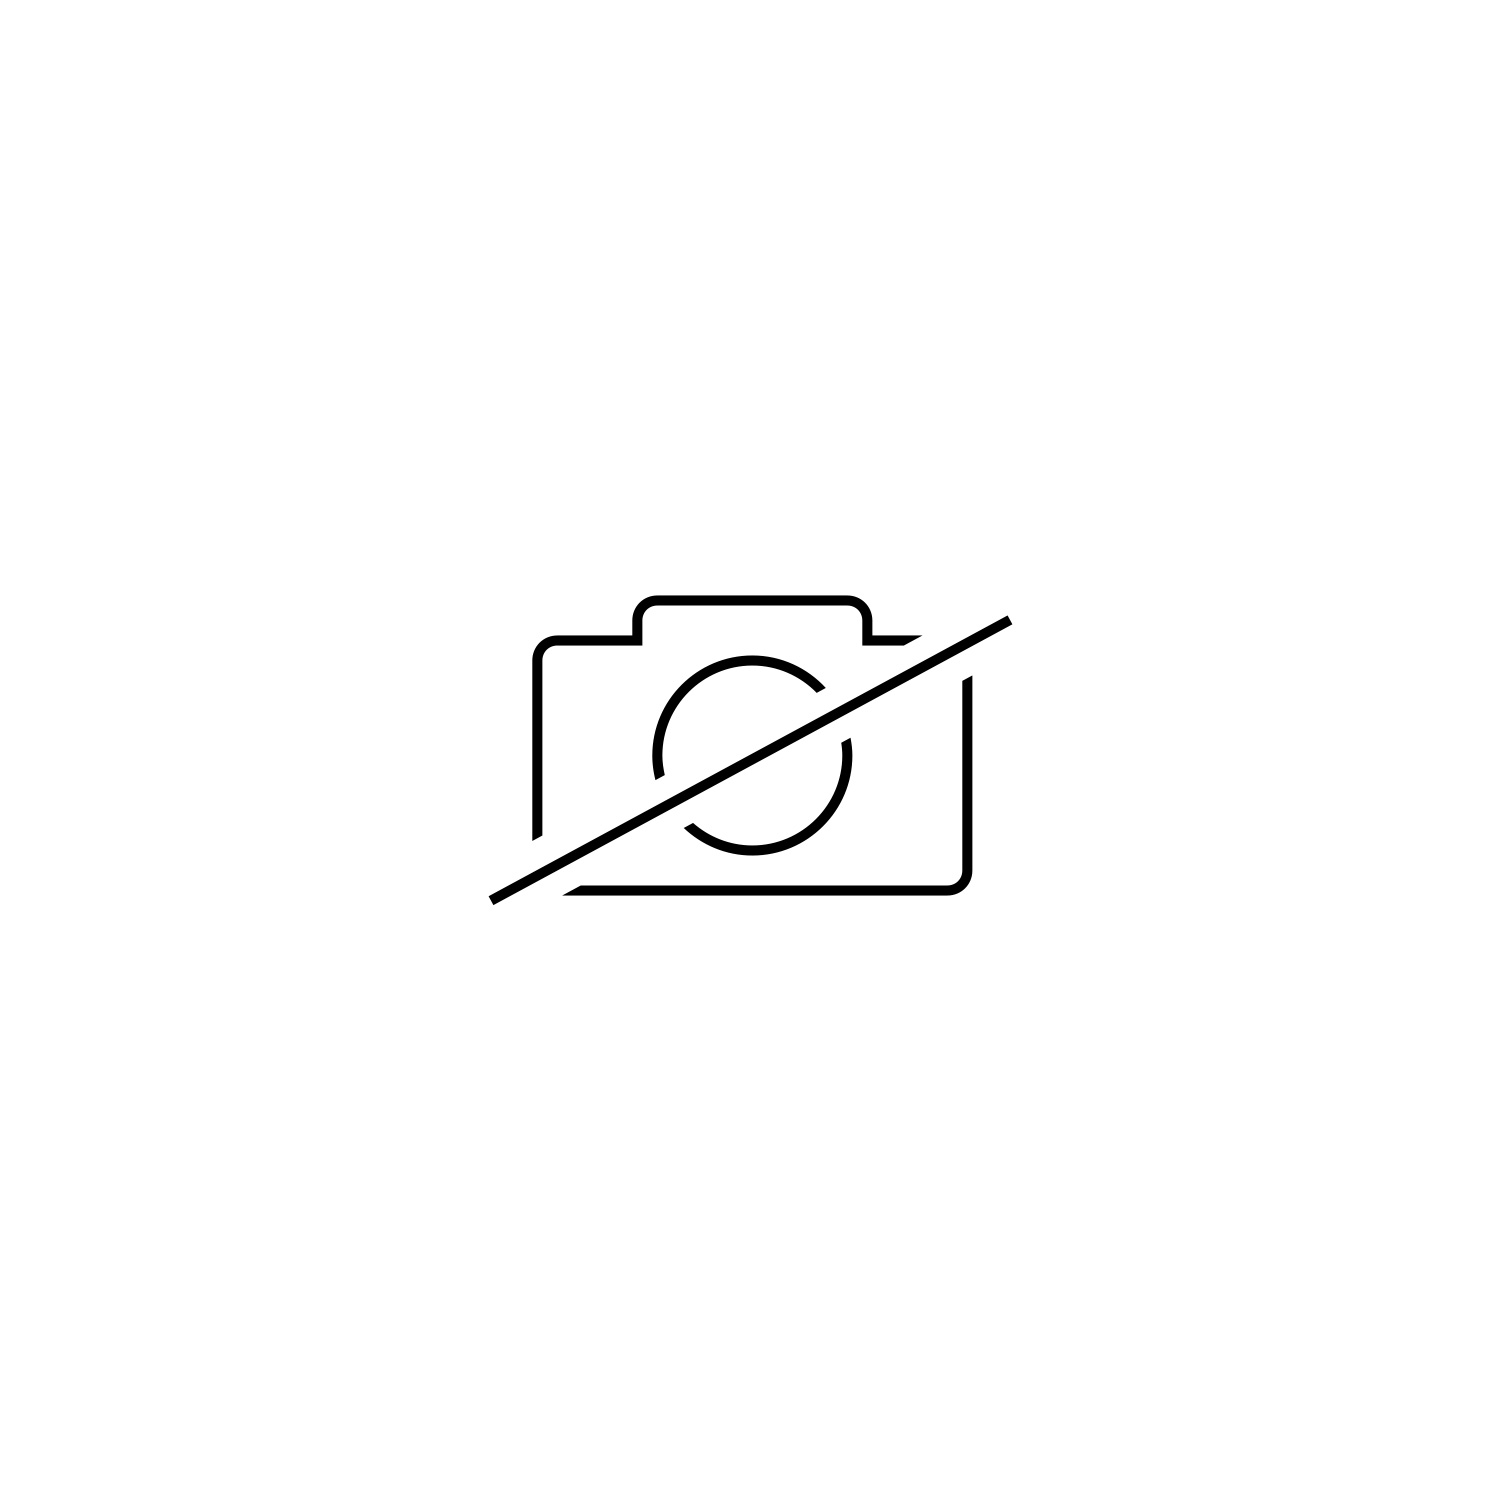 Audi Key ring, black